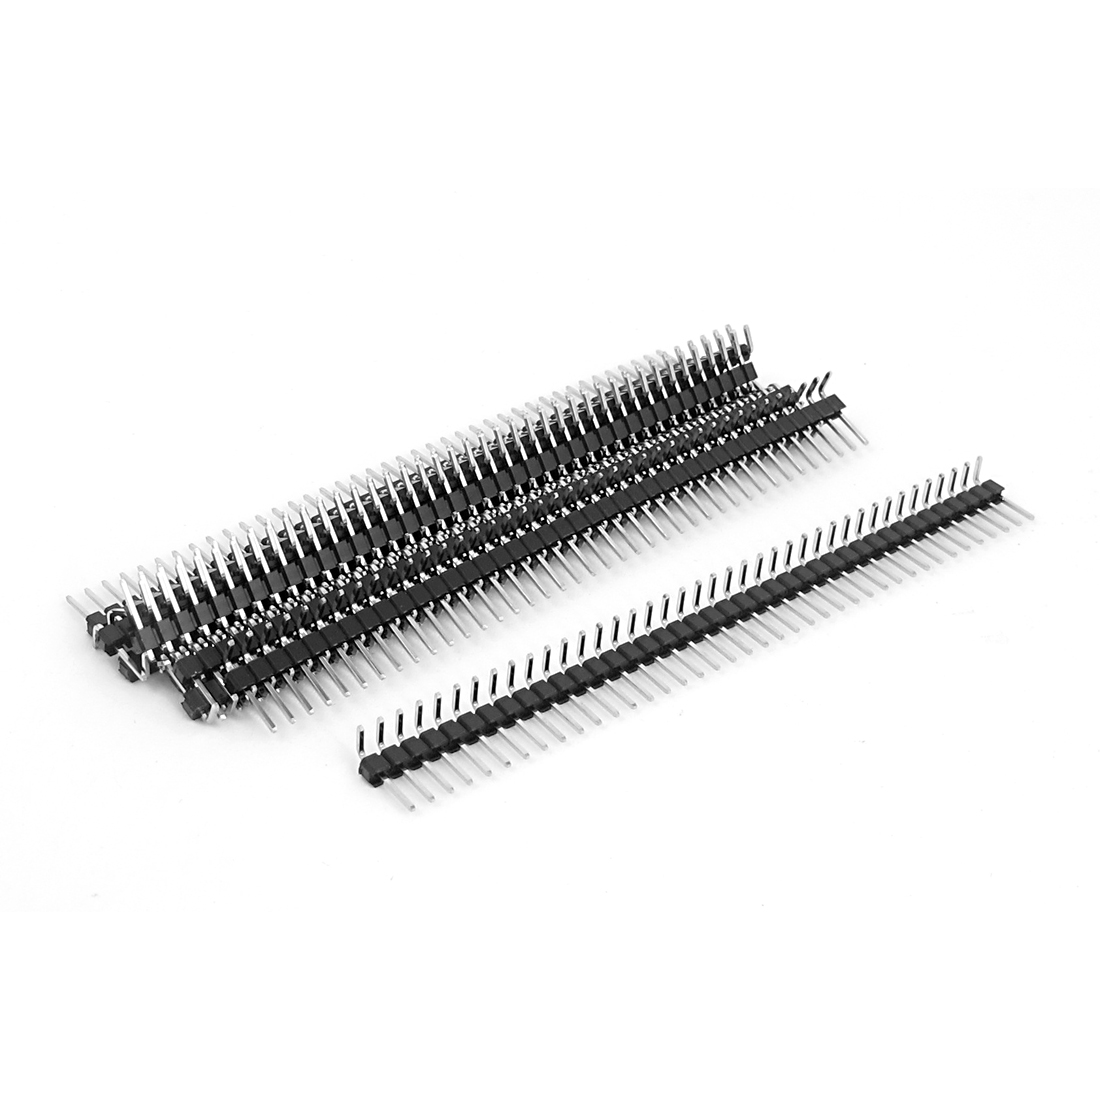 10pcs Right Angle 40-pin 2.54mm Male Header for Breadboard 1x40 Single Row